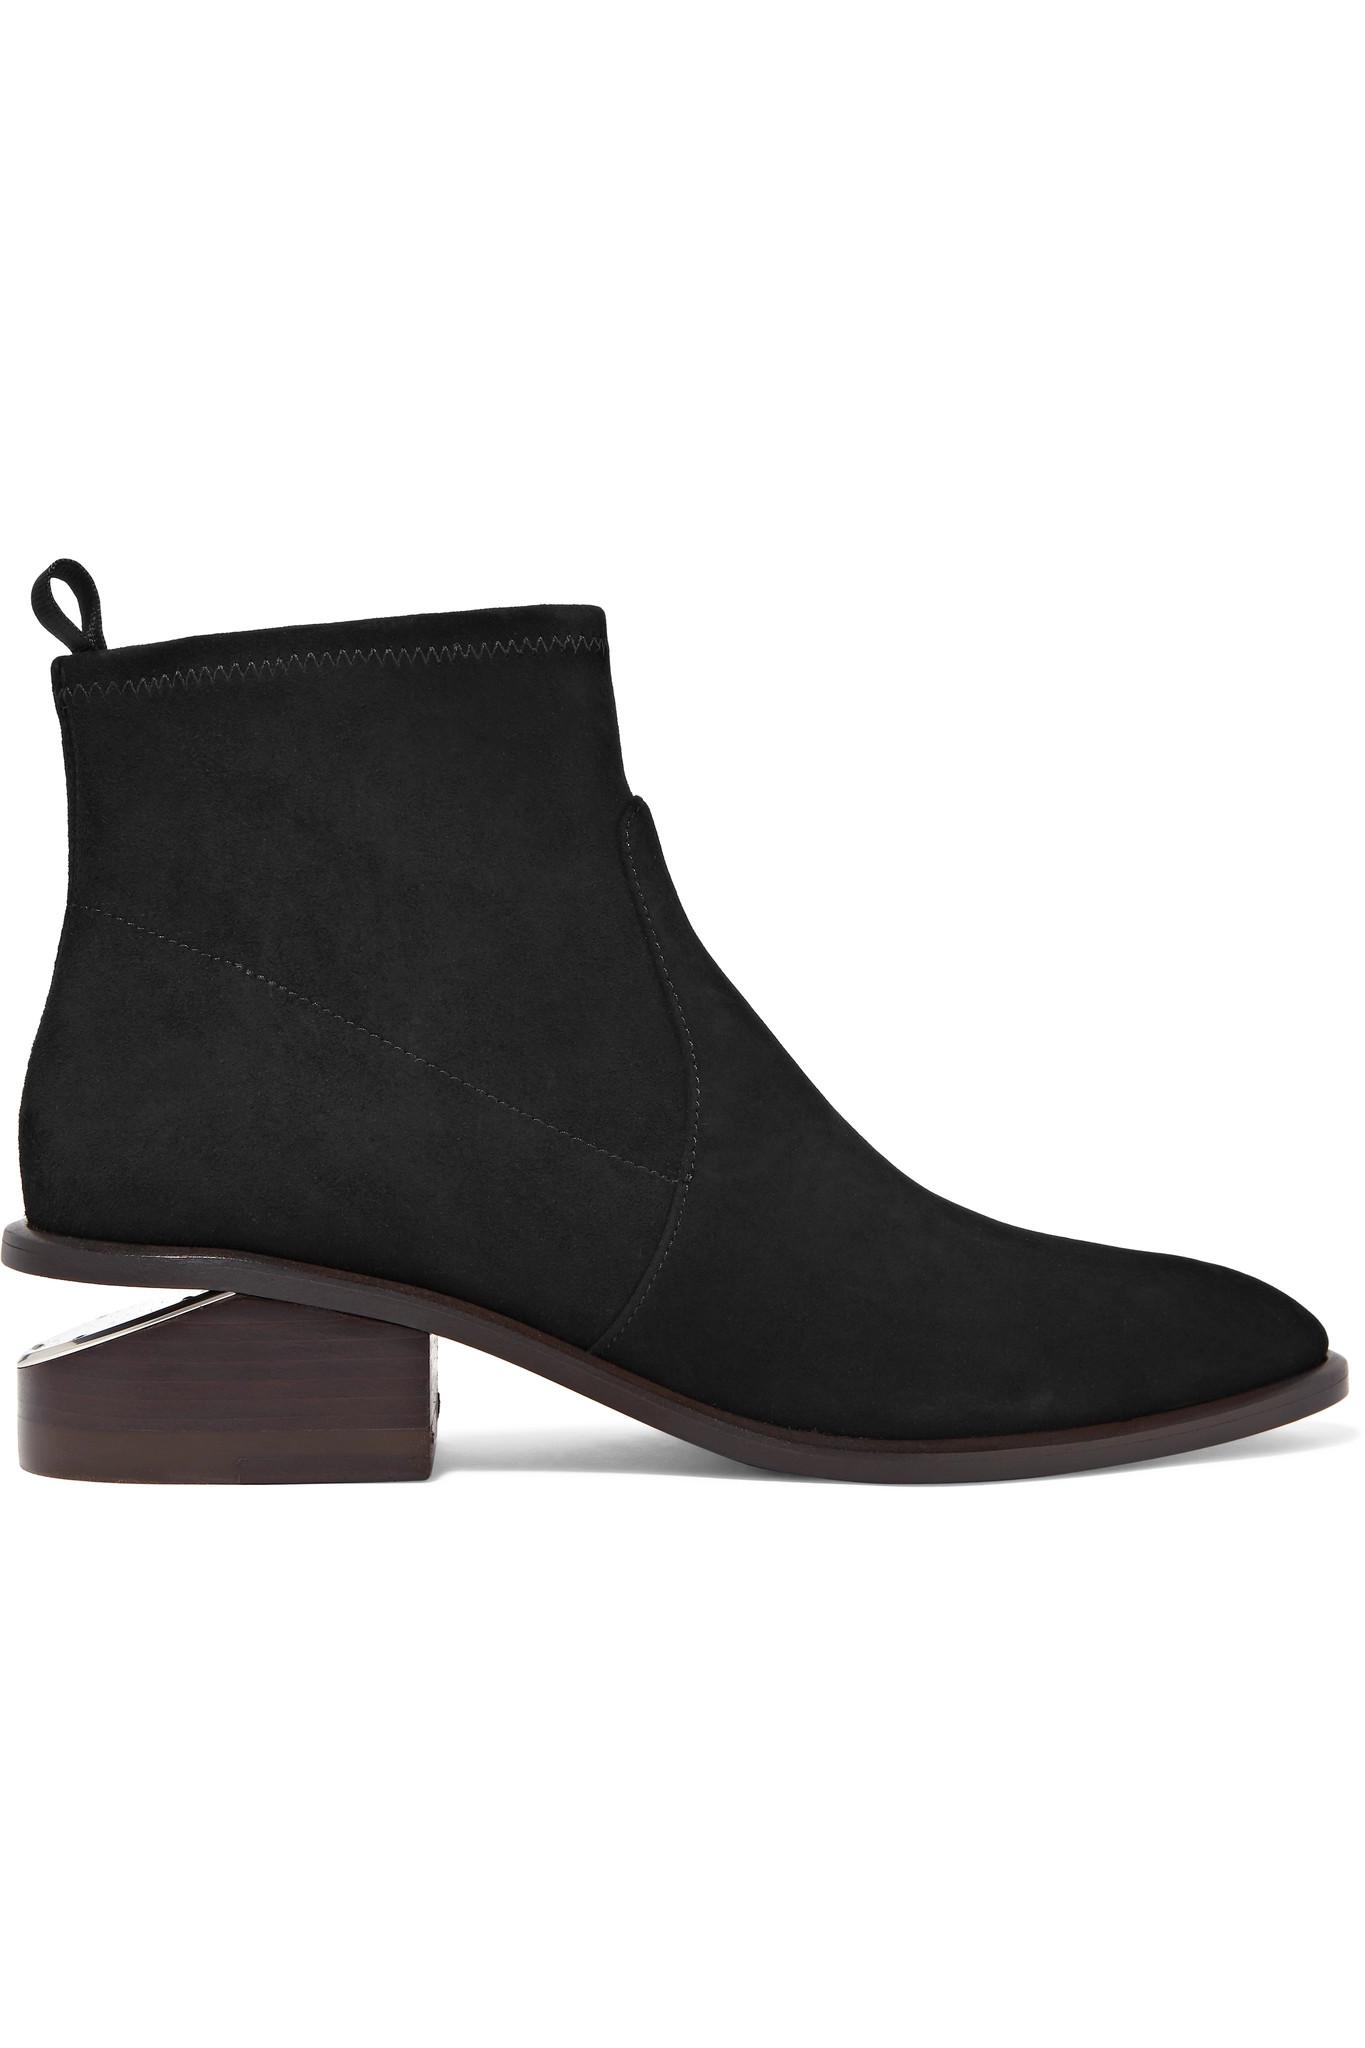 wang kori cutout suede ankle boots in black lyst